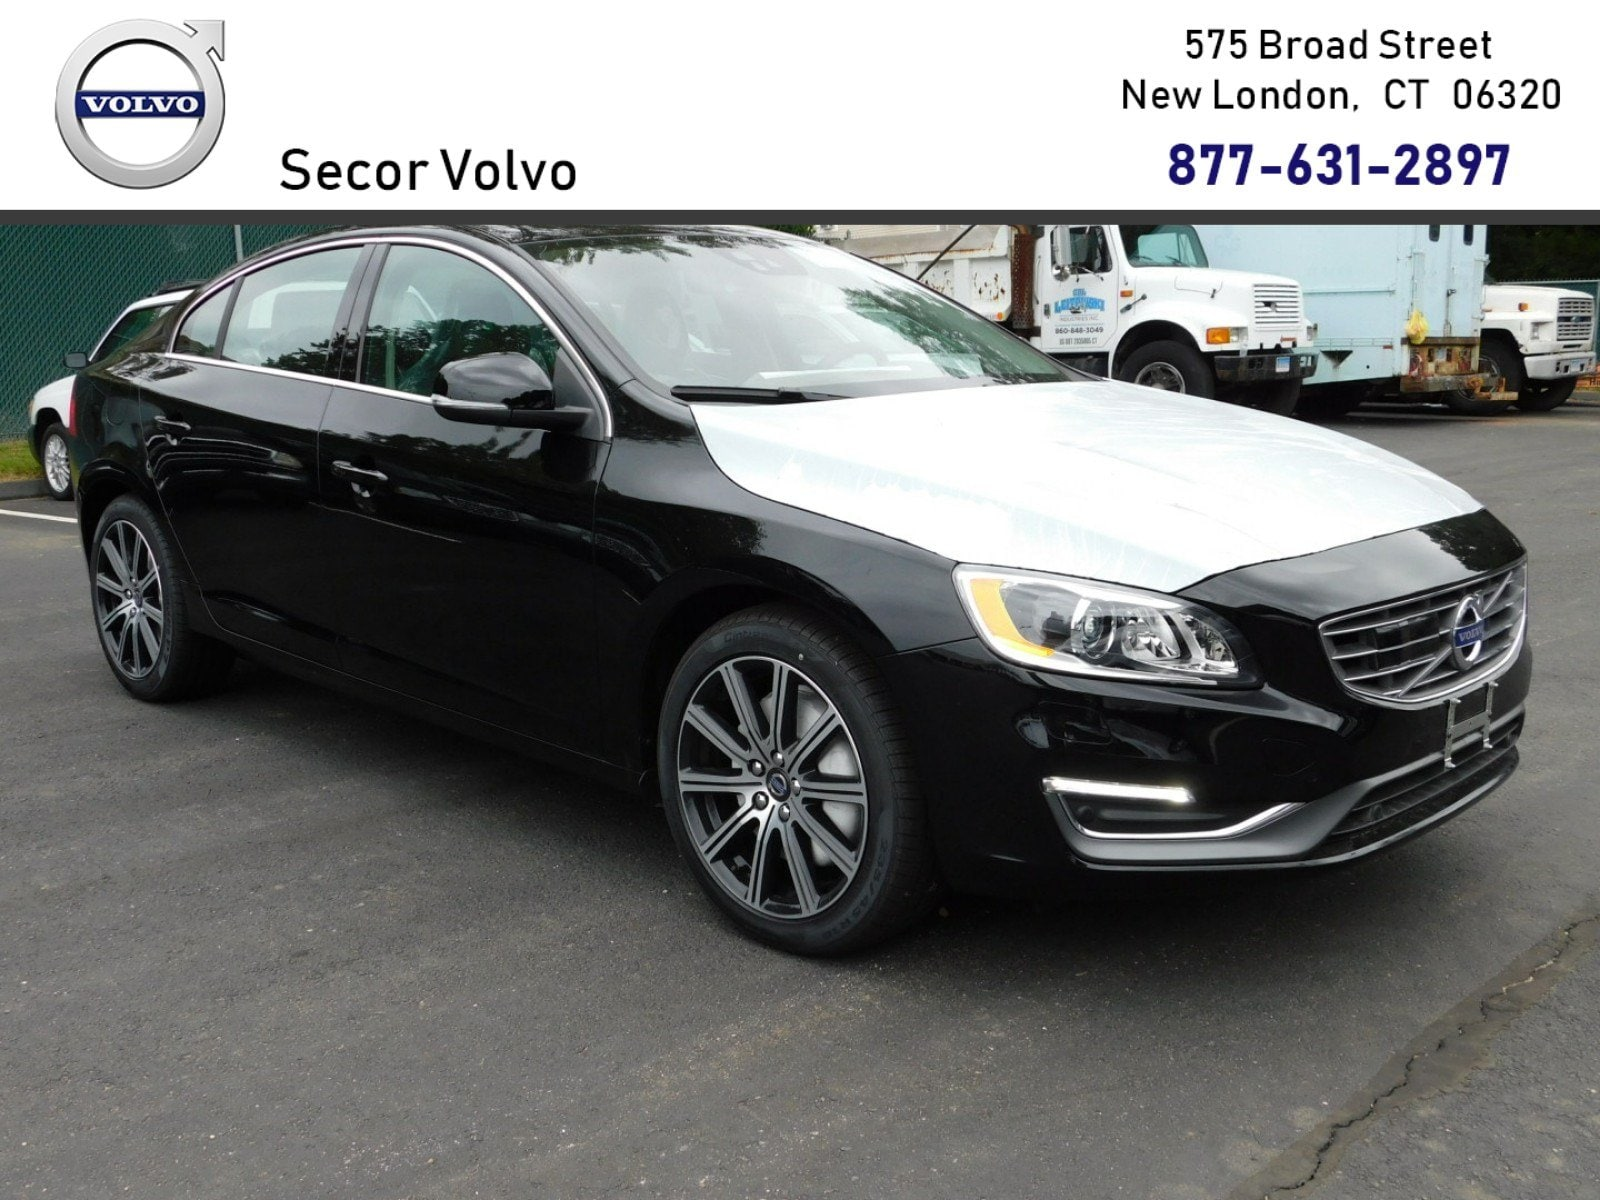 2018 Volvo S60 Inscription Platinum T5 FWD Inscription Platinum